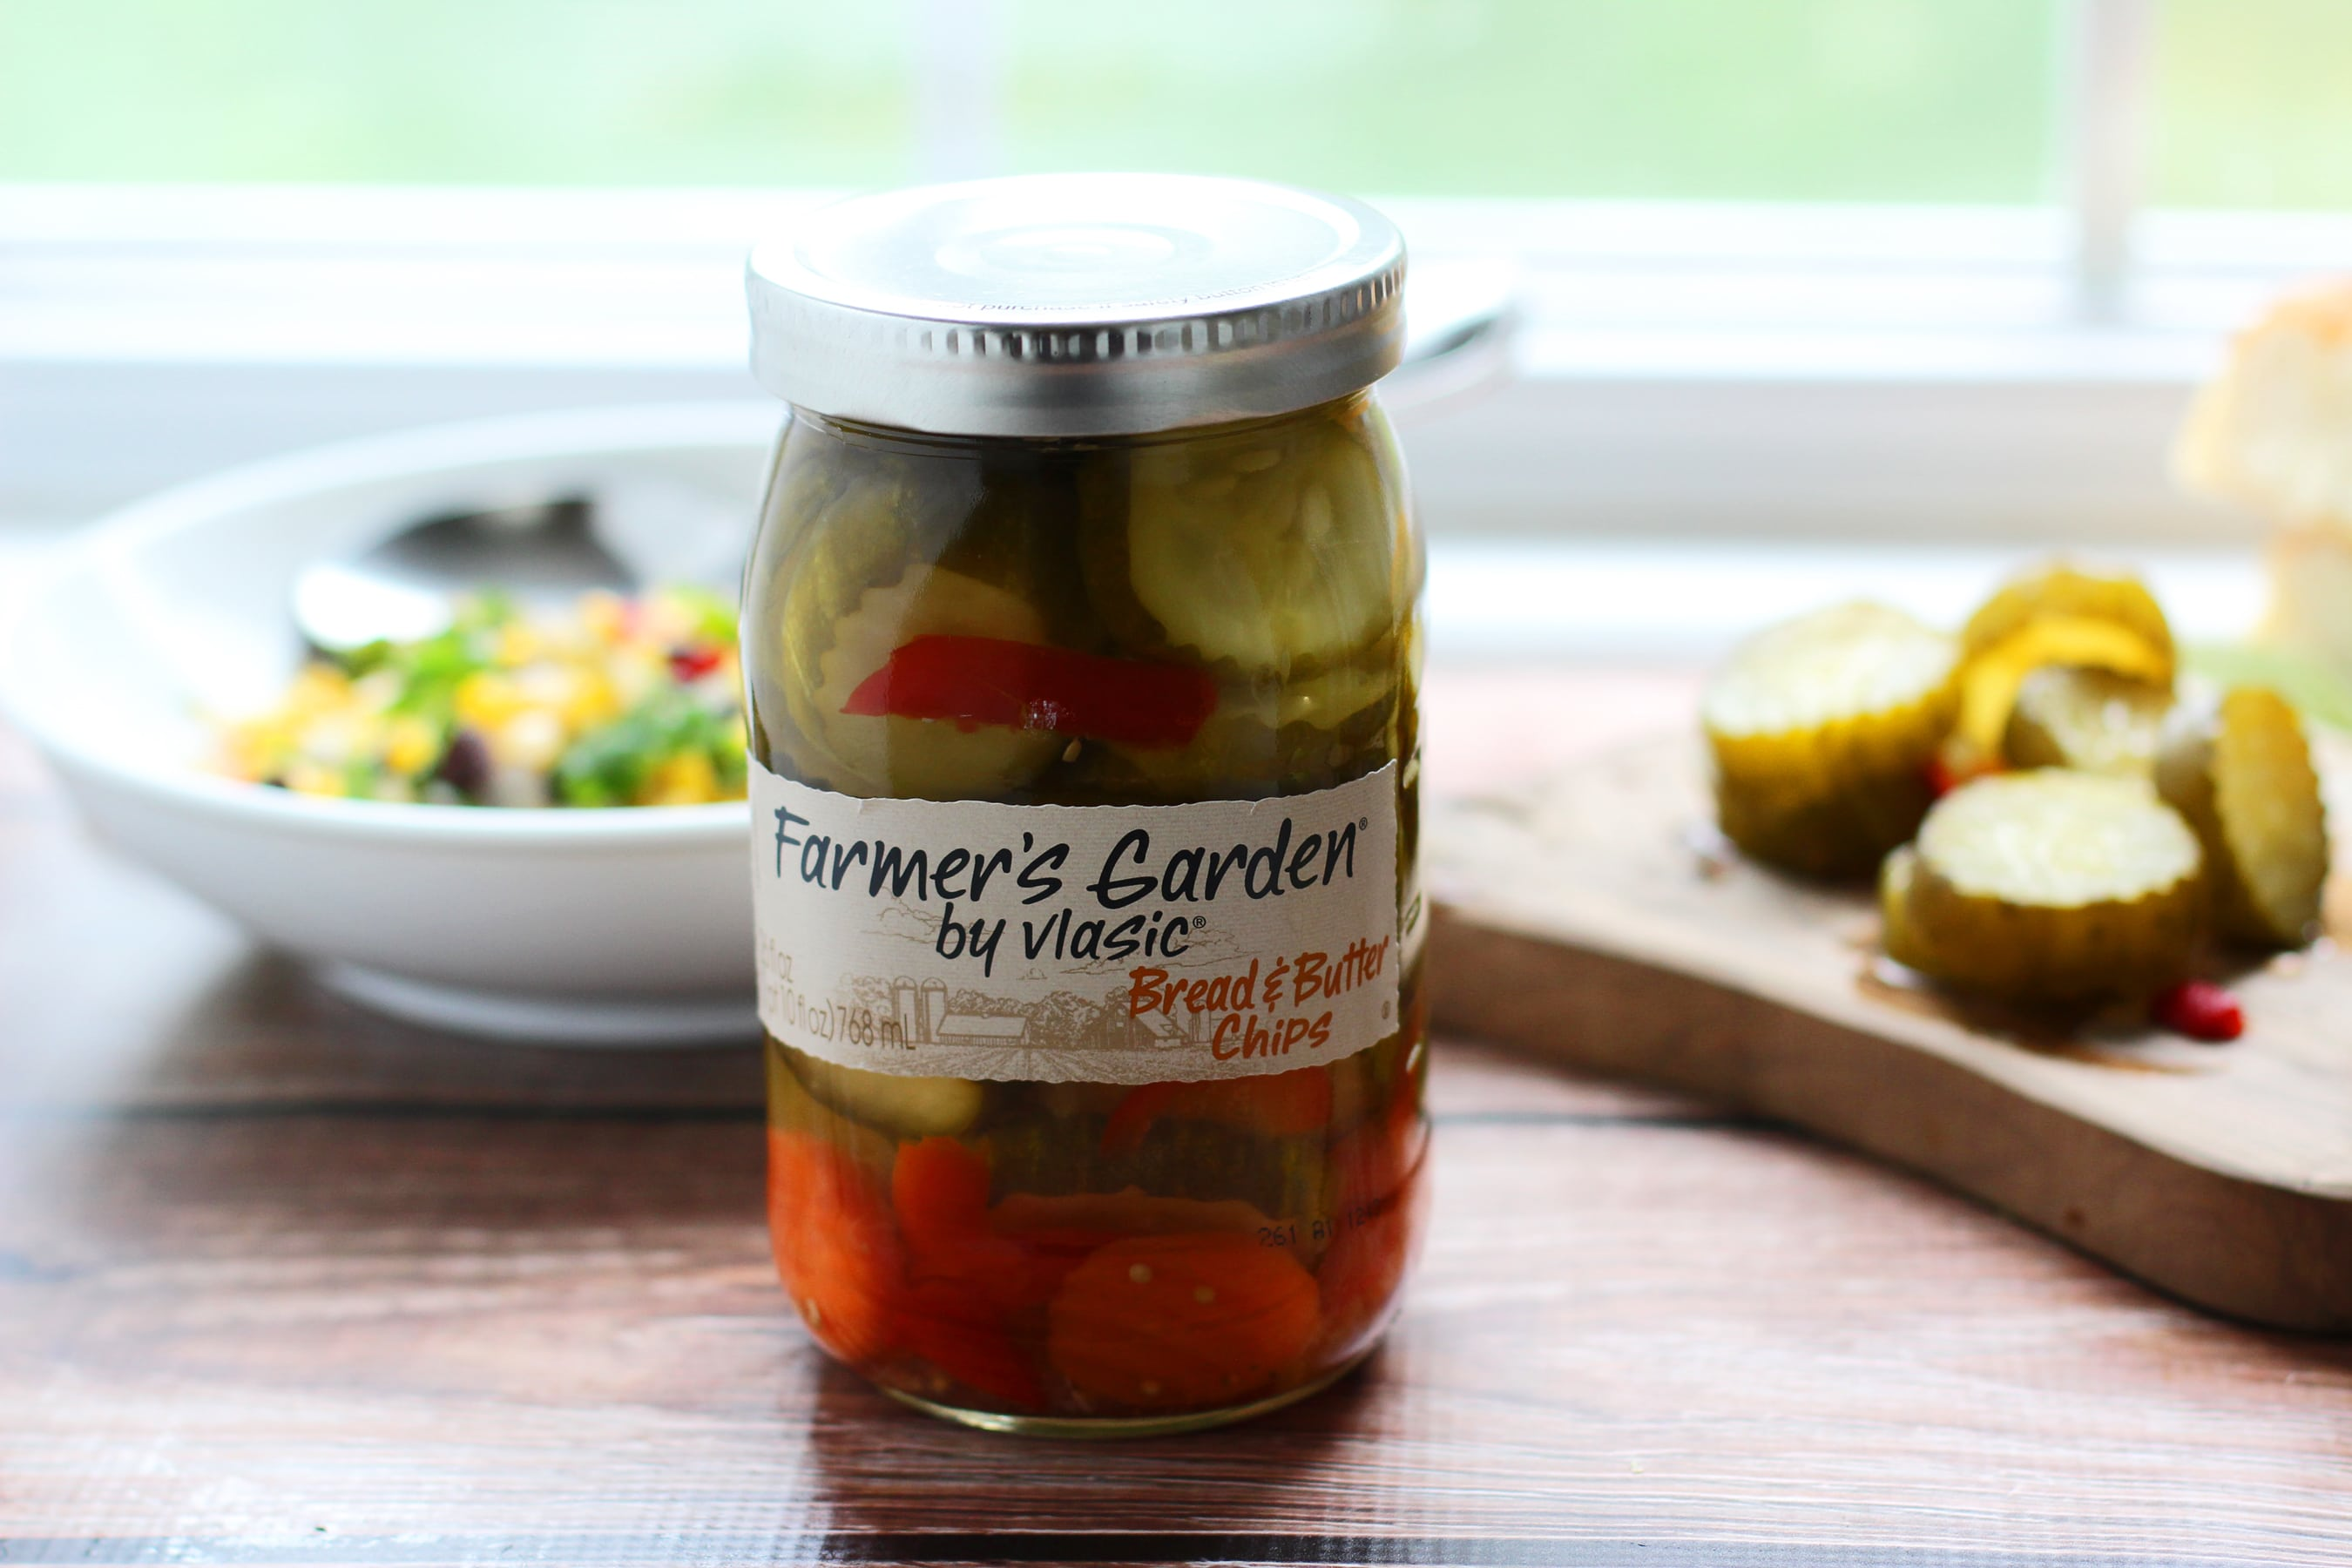 Summer dog relish farmer s garden by vlasic cooking for keeps for Vlasic farmer s garden pickles